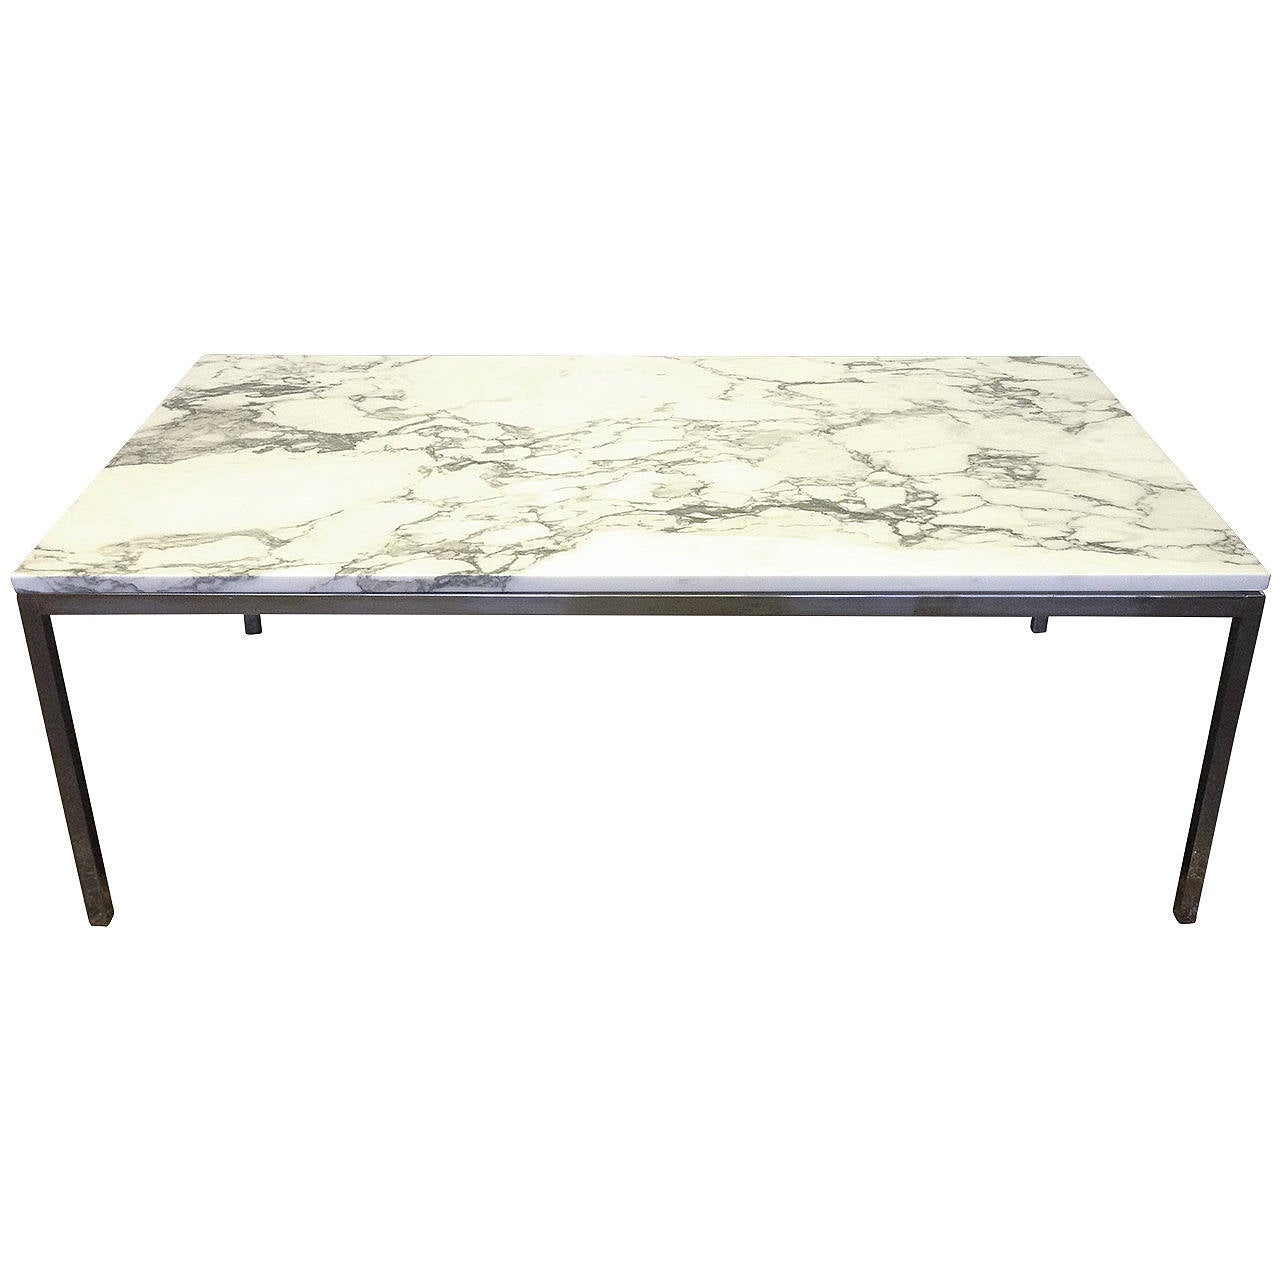 Florence Knoll Coffee Table In White Marble At 1stdibs